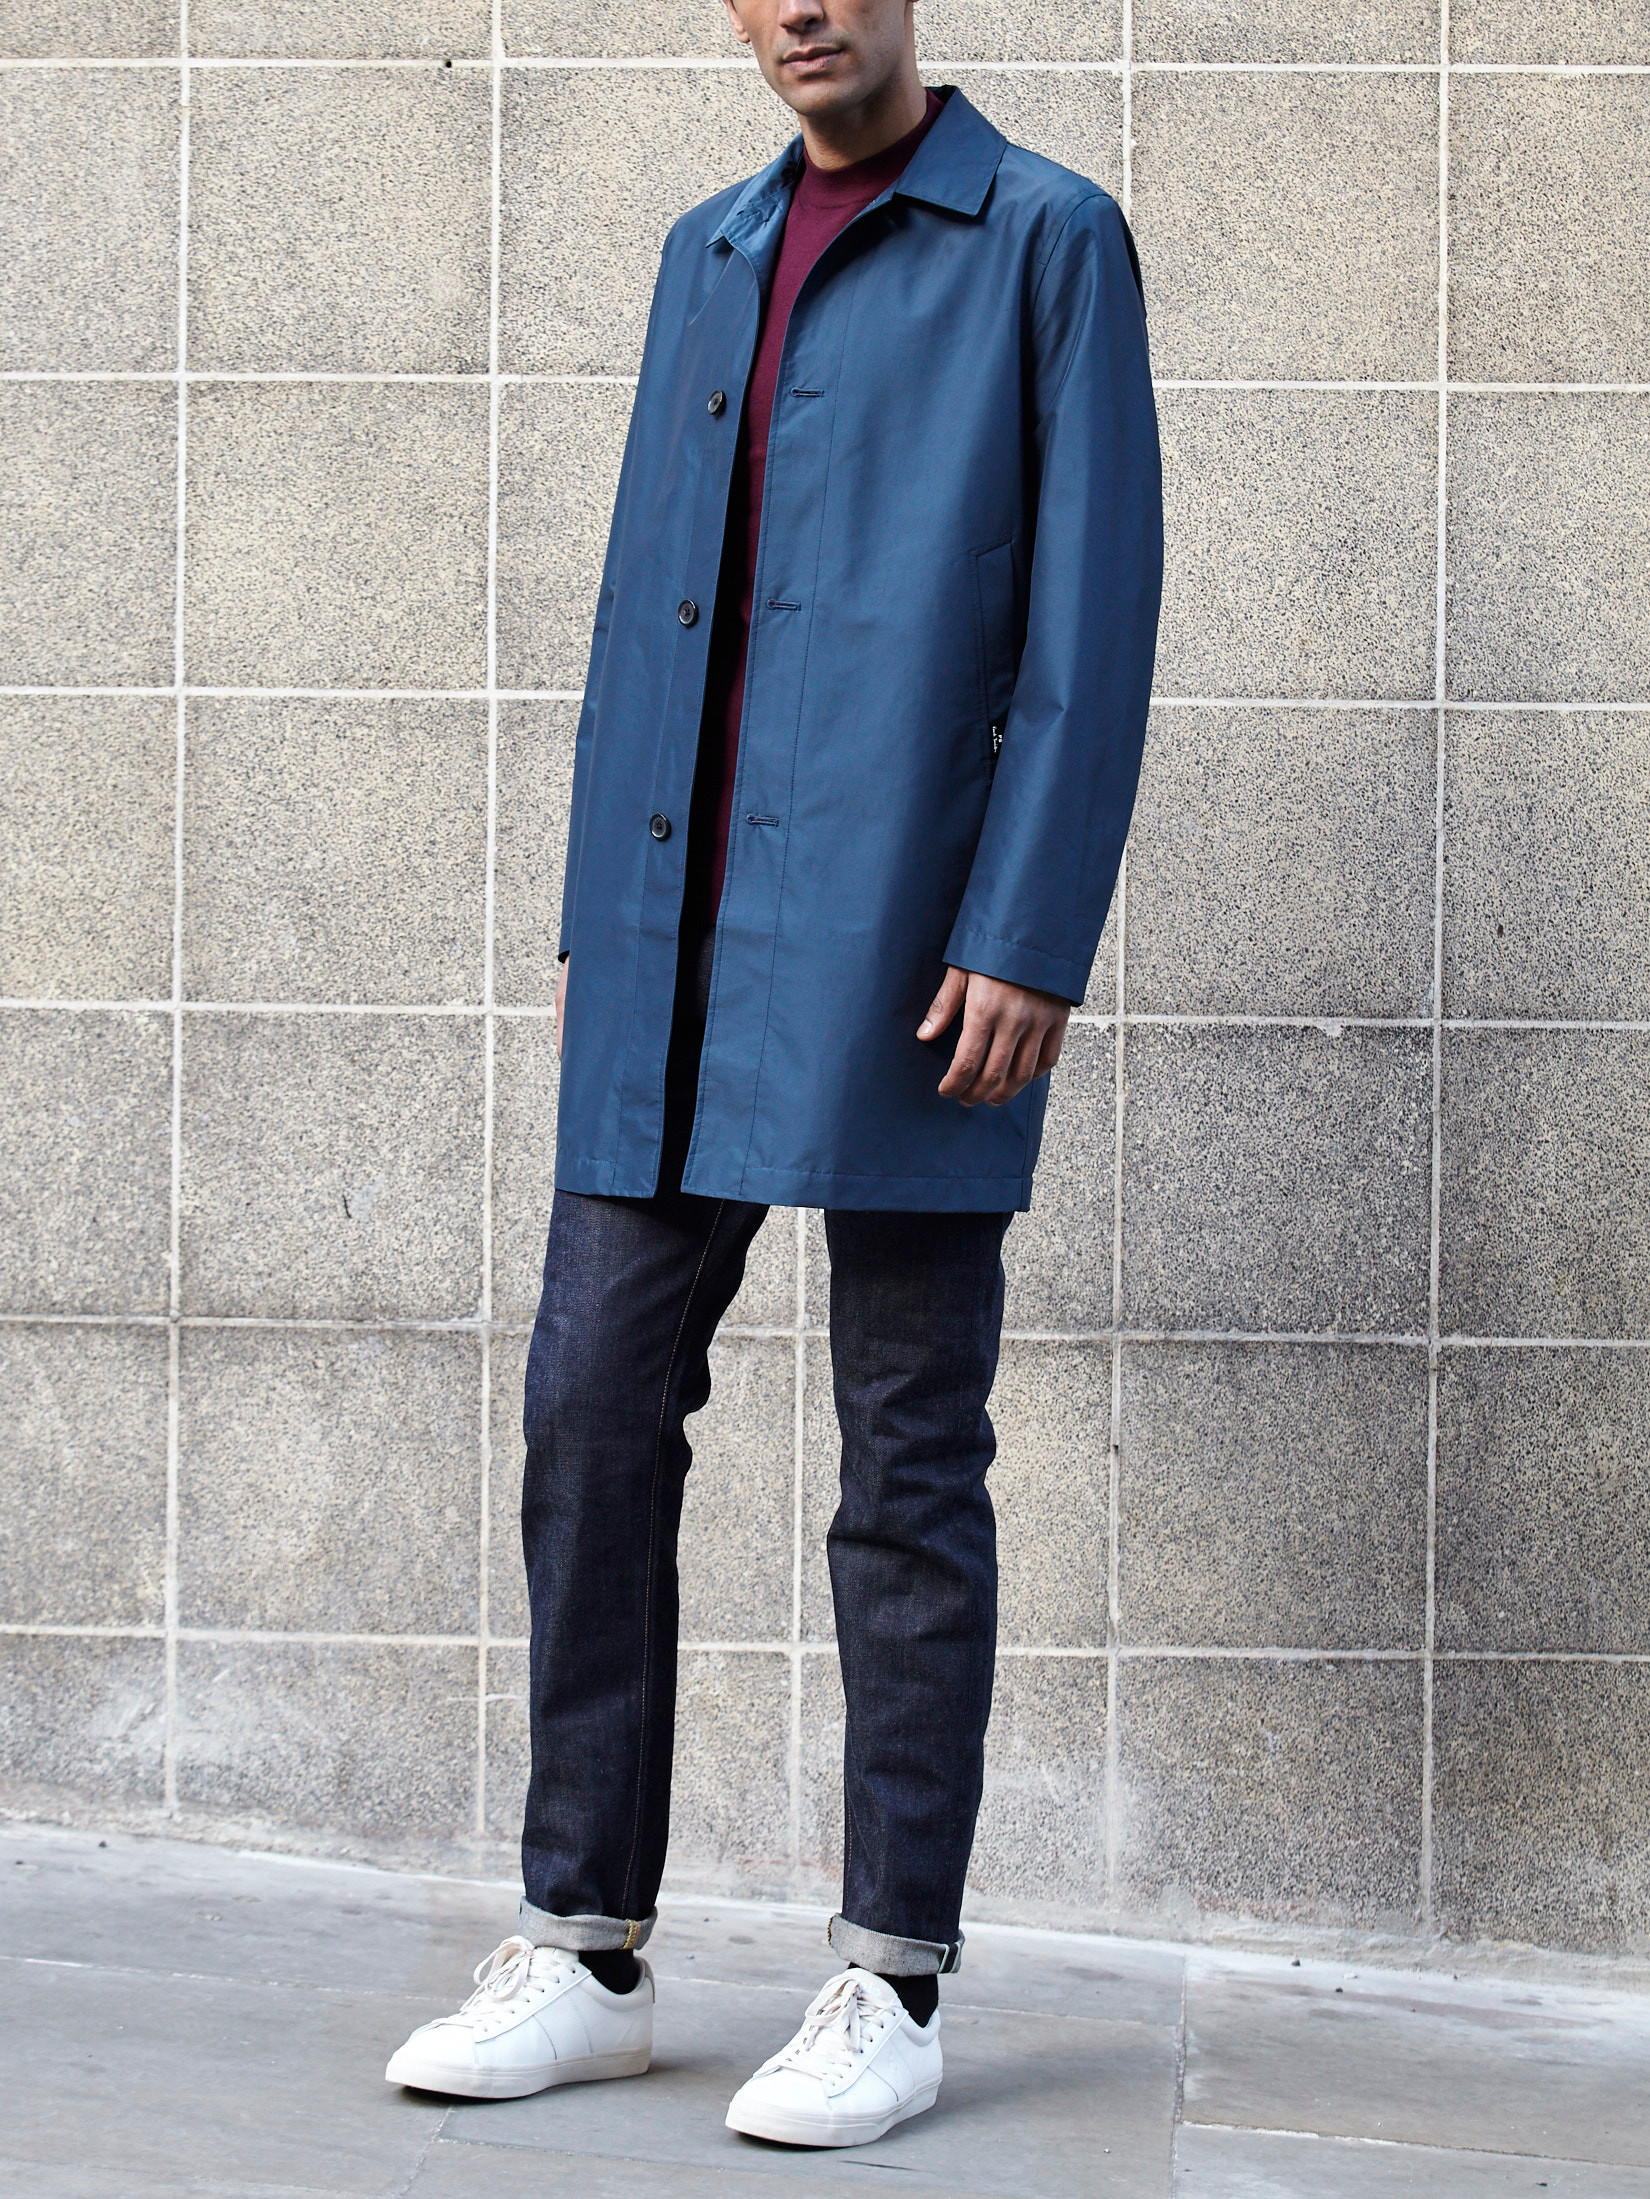 Men's outfit idea for 2021 with navy trench coat, bold coloured sweatshirt, dark blue jeans, white trainers. Suitable for spring and autumn.